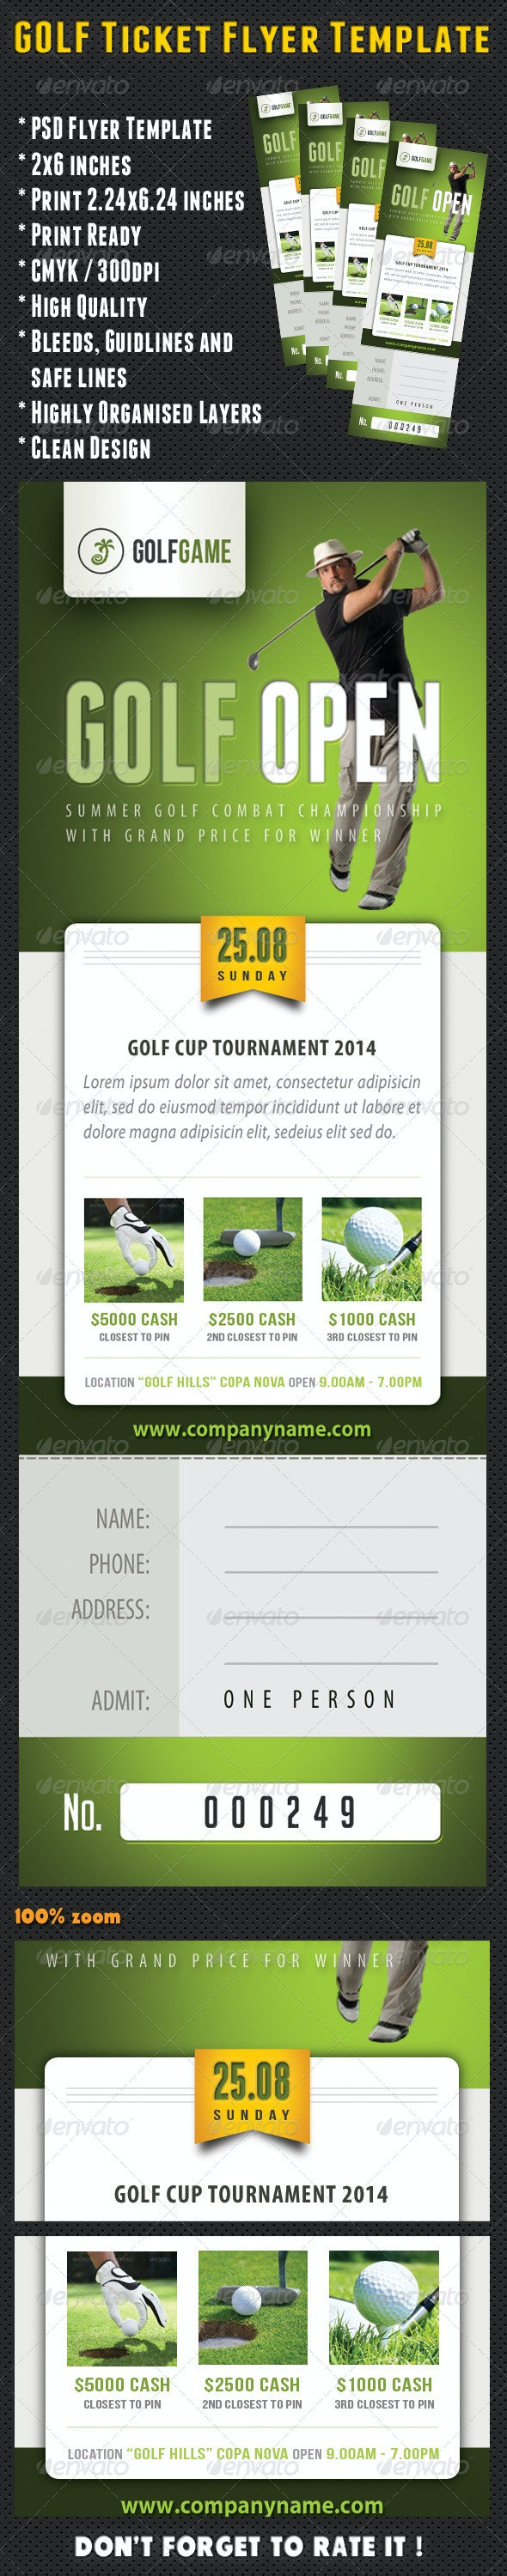 Golf Ticket Template 04 - Sports Events